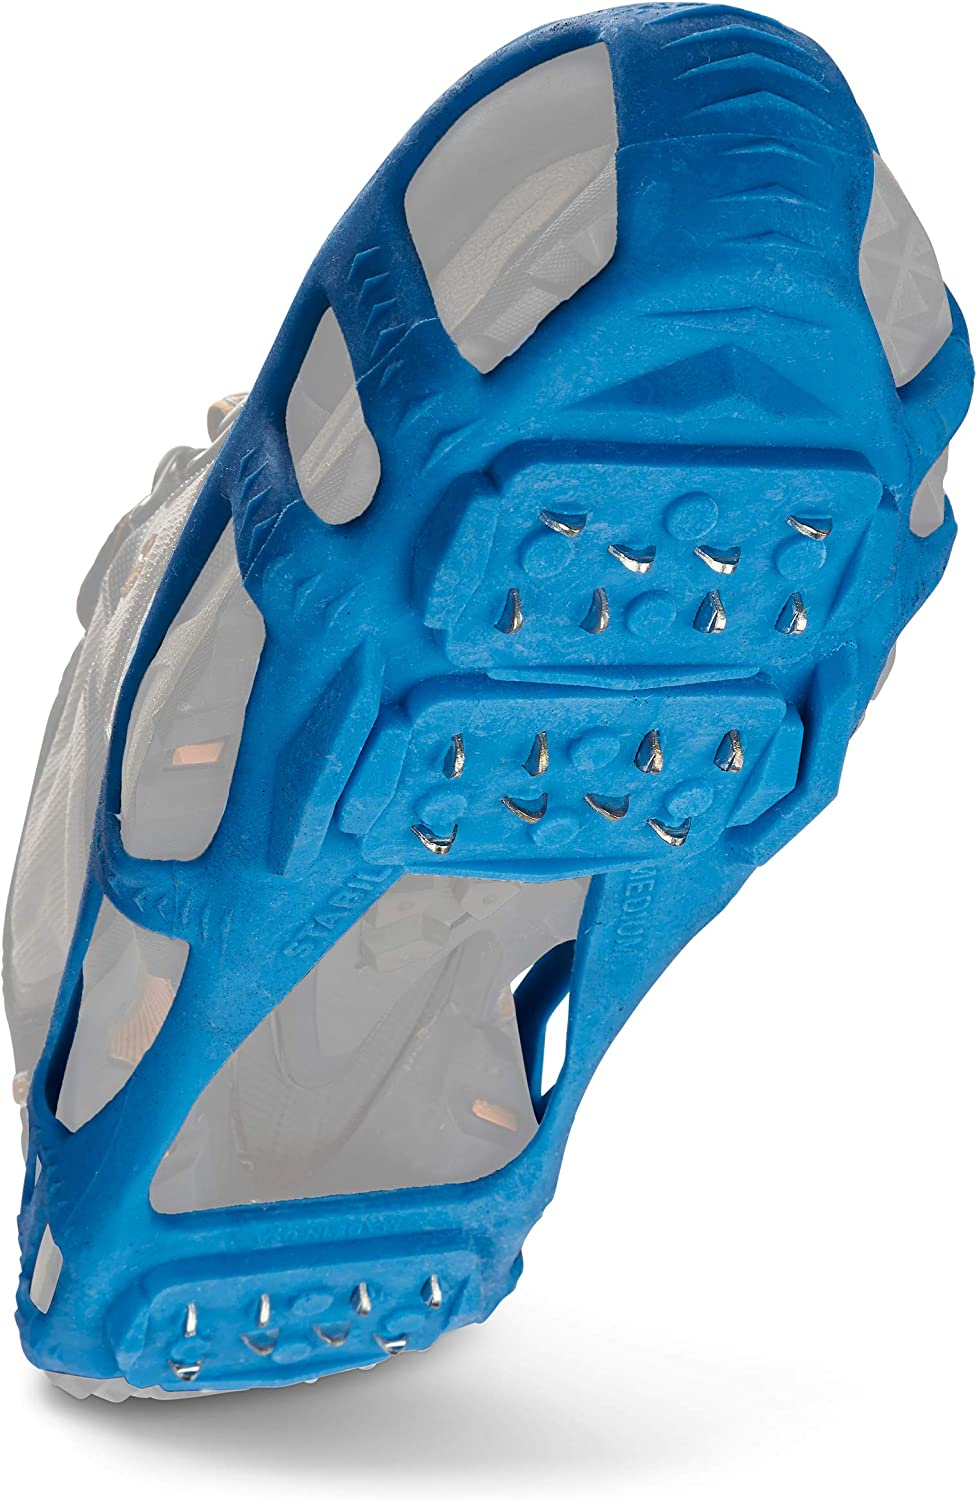 STABILicers Walk Traction Cleat for Walking on Snow and Ice, Blue, Medium (1 Pair)